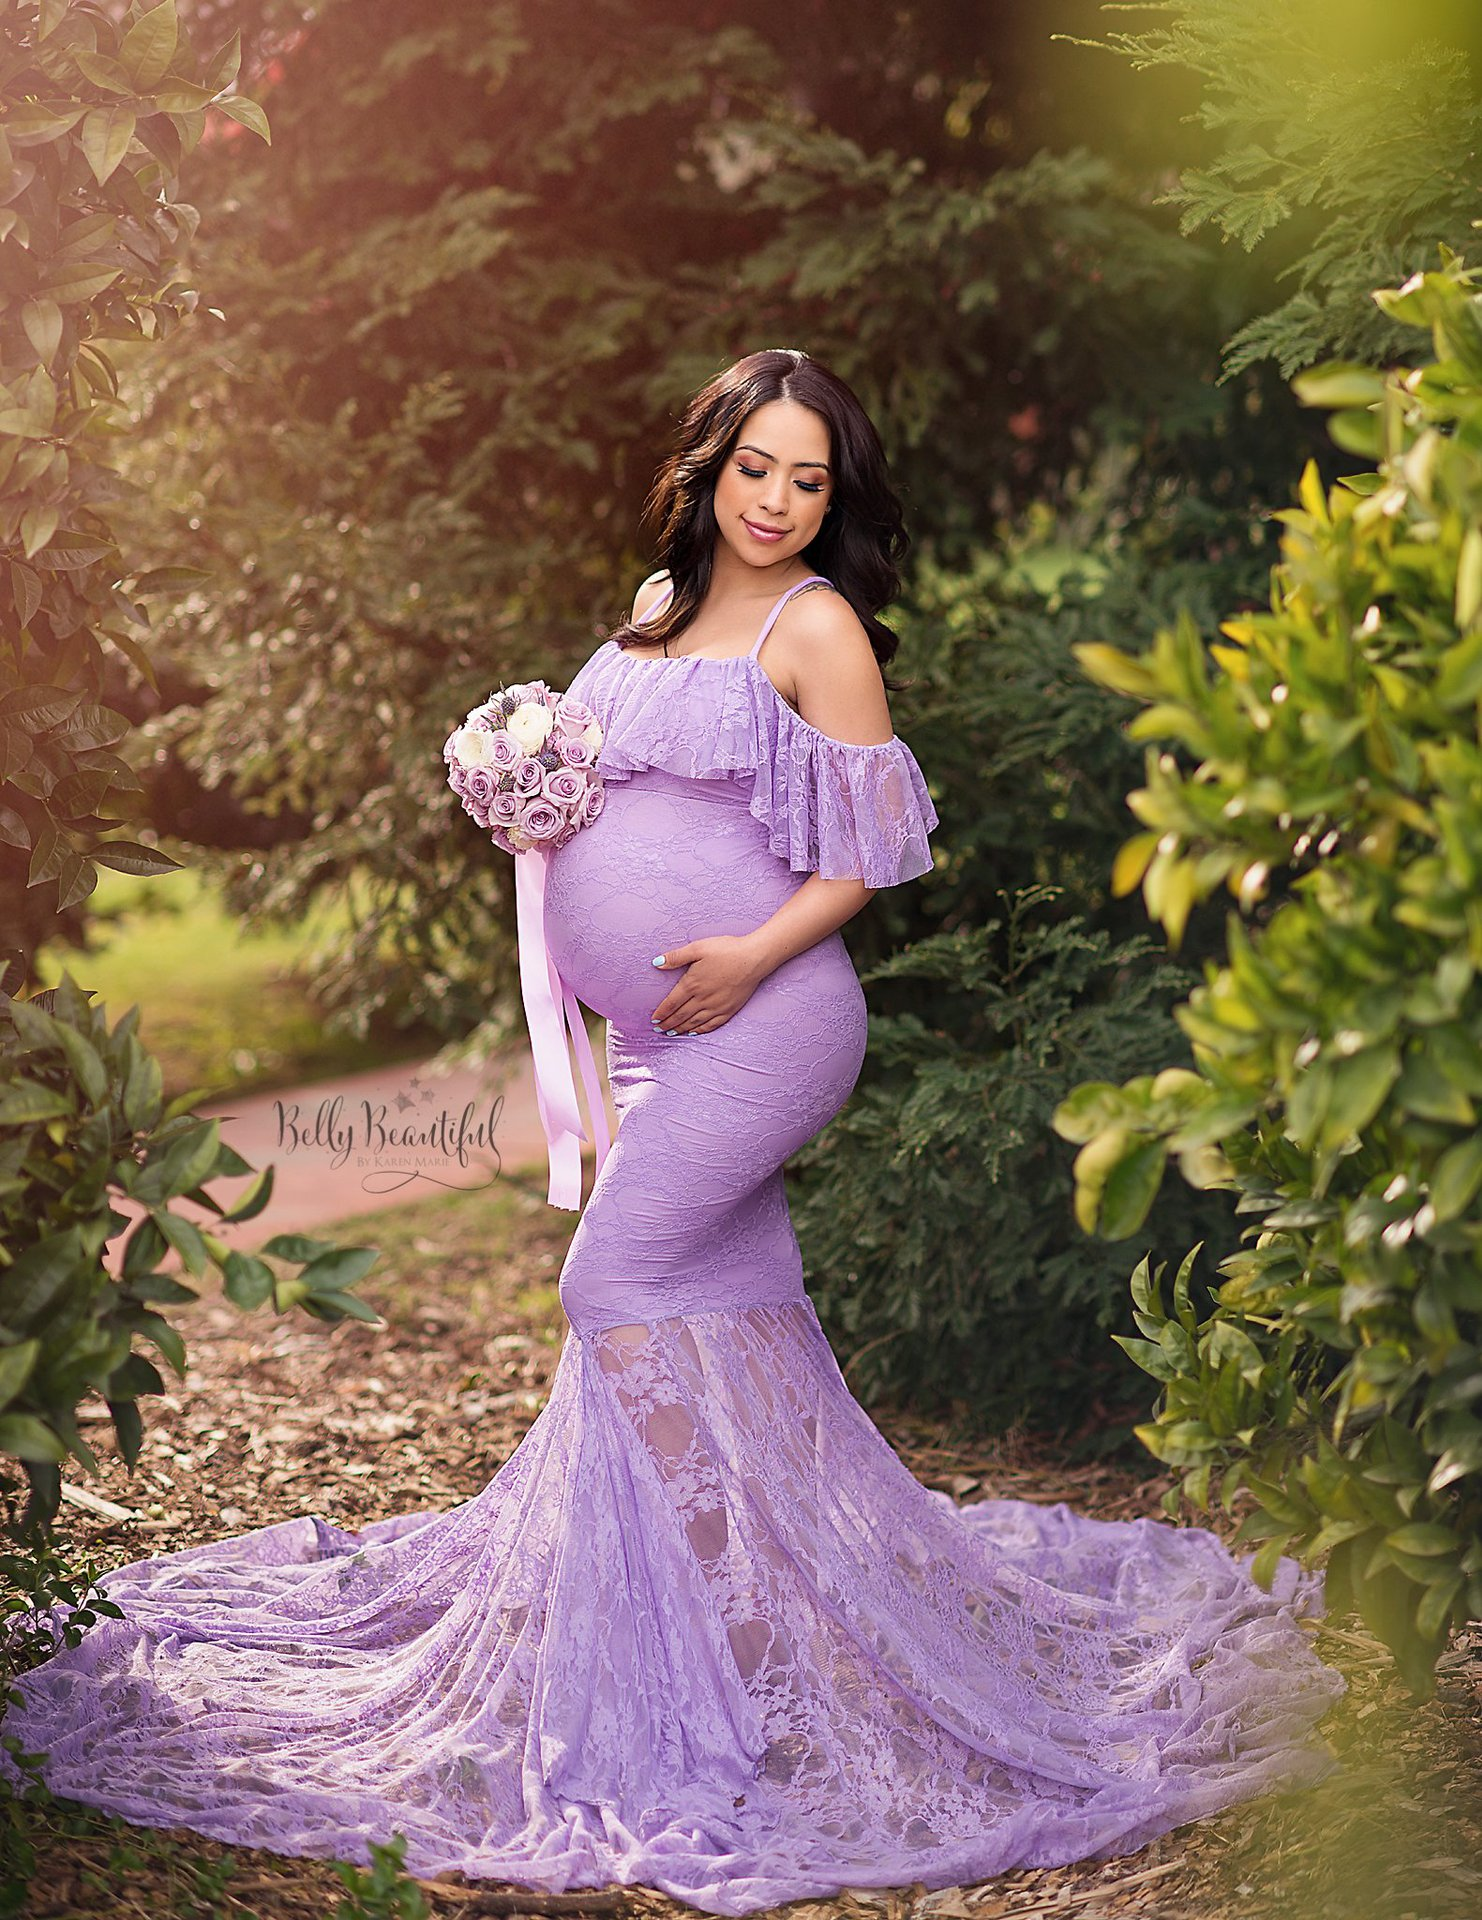 Lace Maternity Photography Props Pregnancy Dress Photography Maternity Dress for Photo Shoot Pregnant Dress Lace Maxi Gown S-XL enlarge